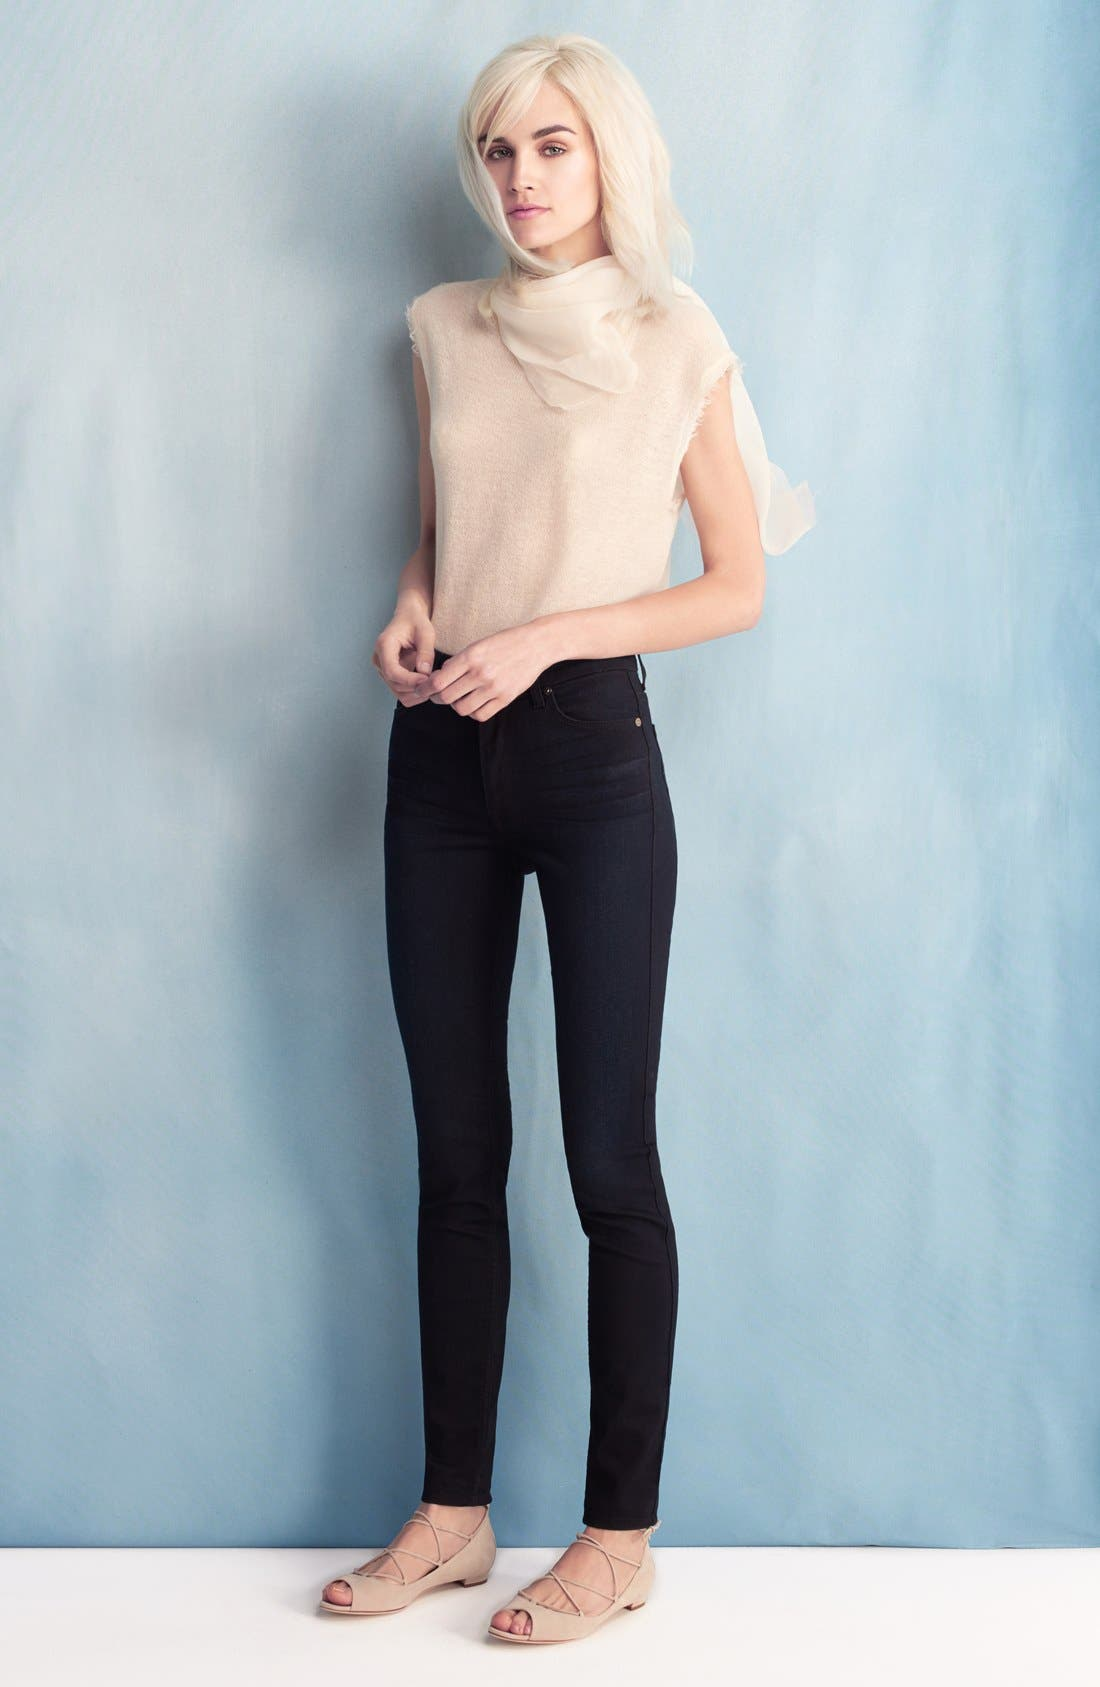 7 For All Mankind b(air) High Waist Skinny Jeans,                             Alternate thumbnail 6, color,                             Blue/ Black River Thames